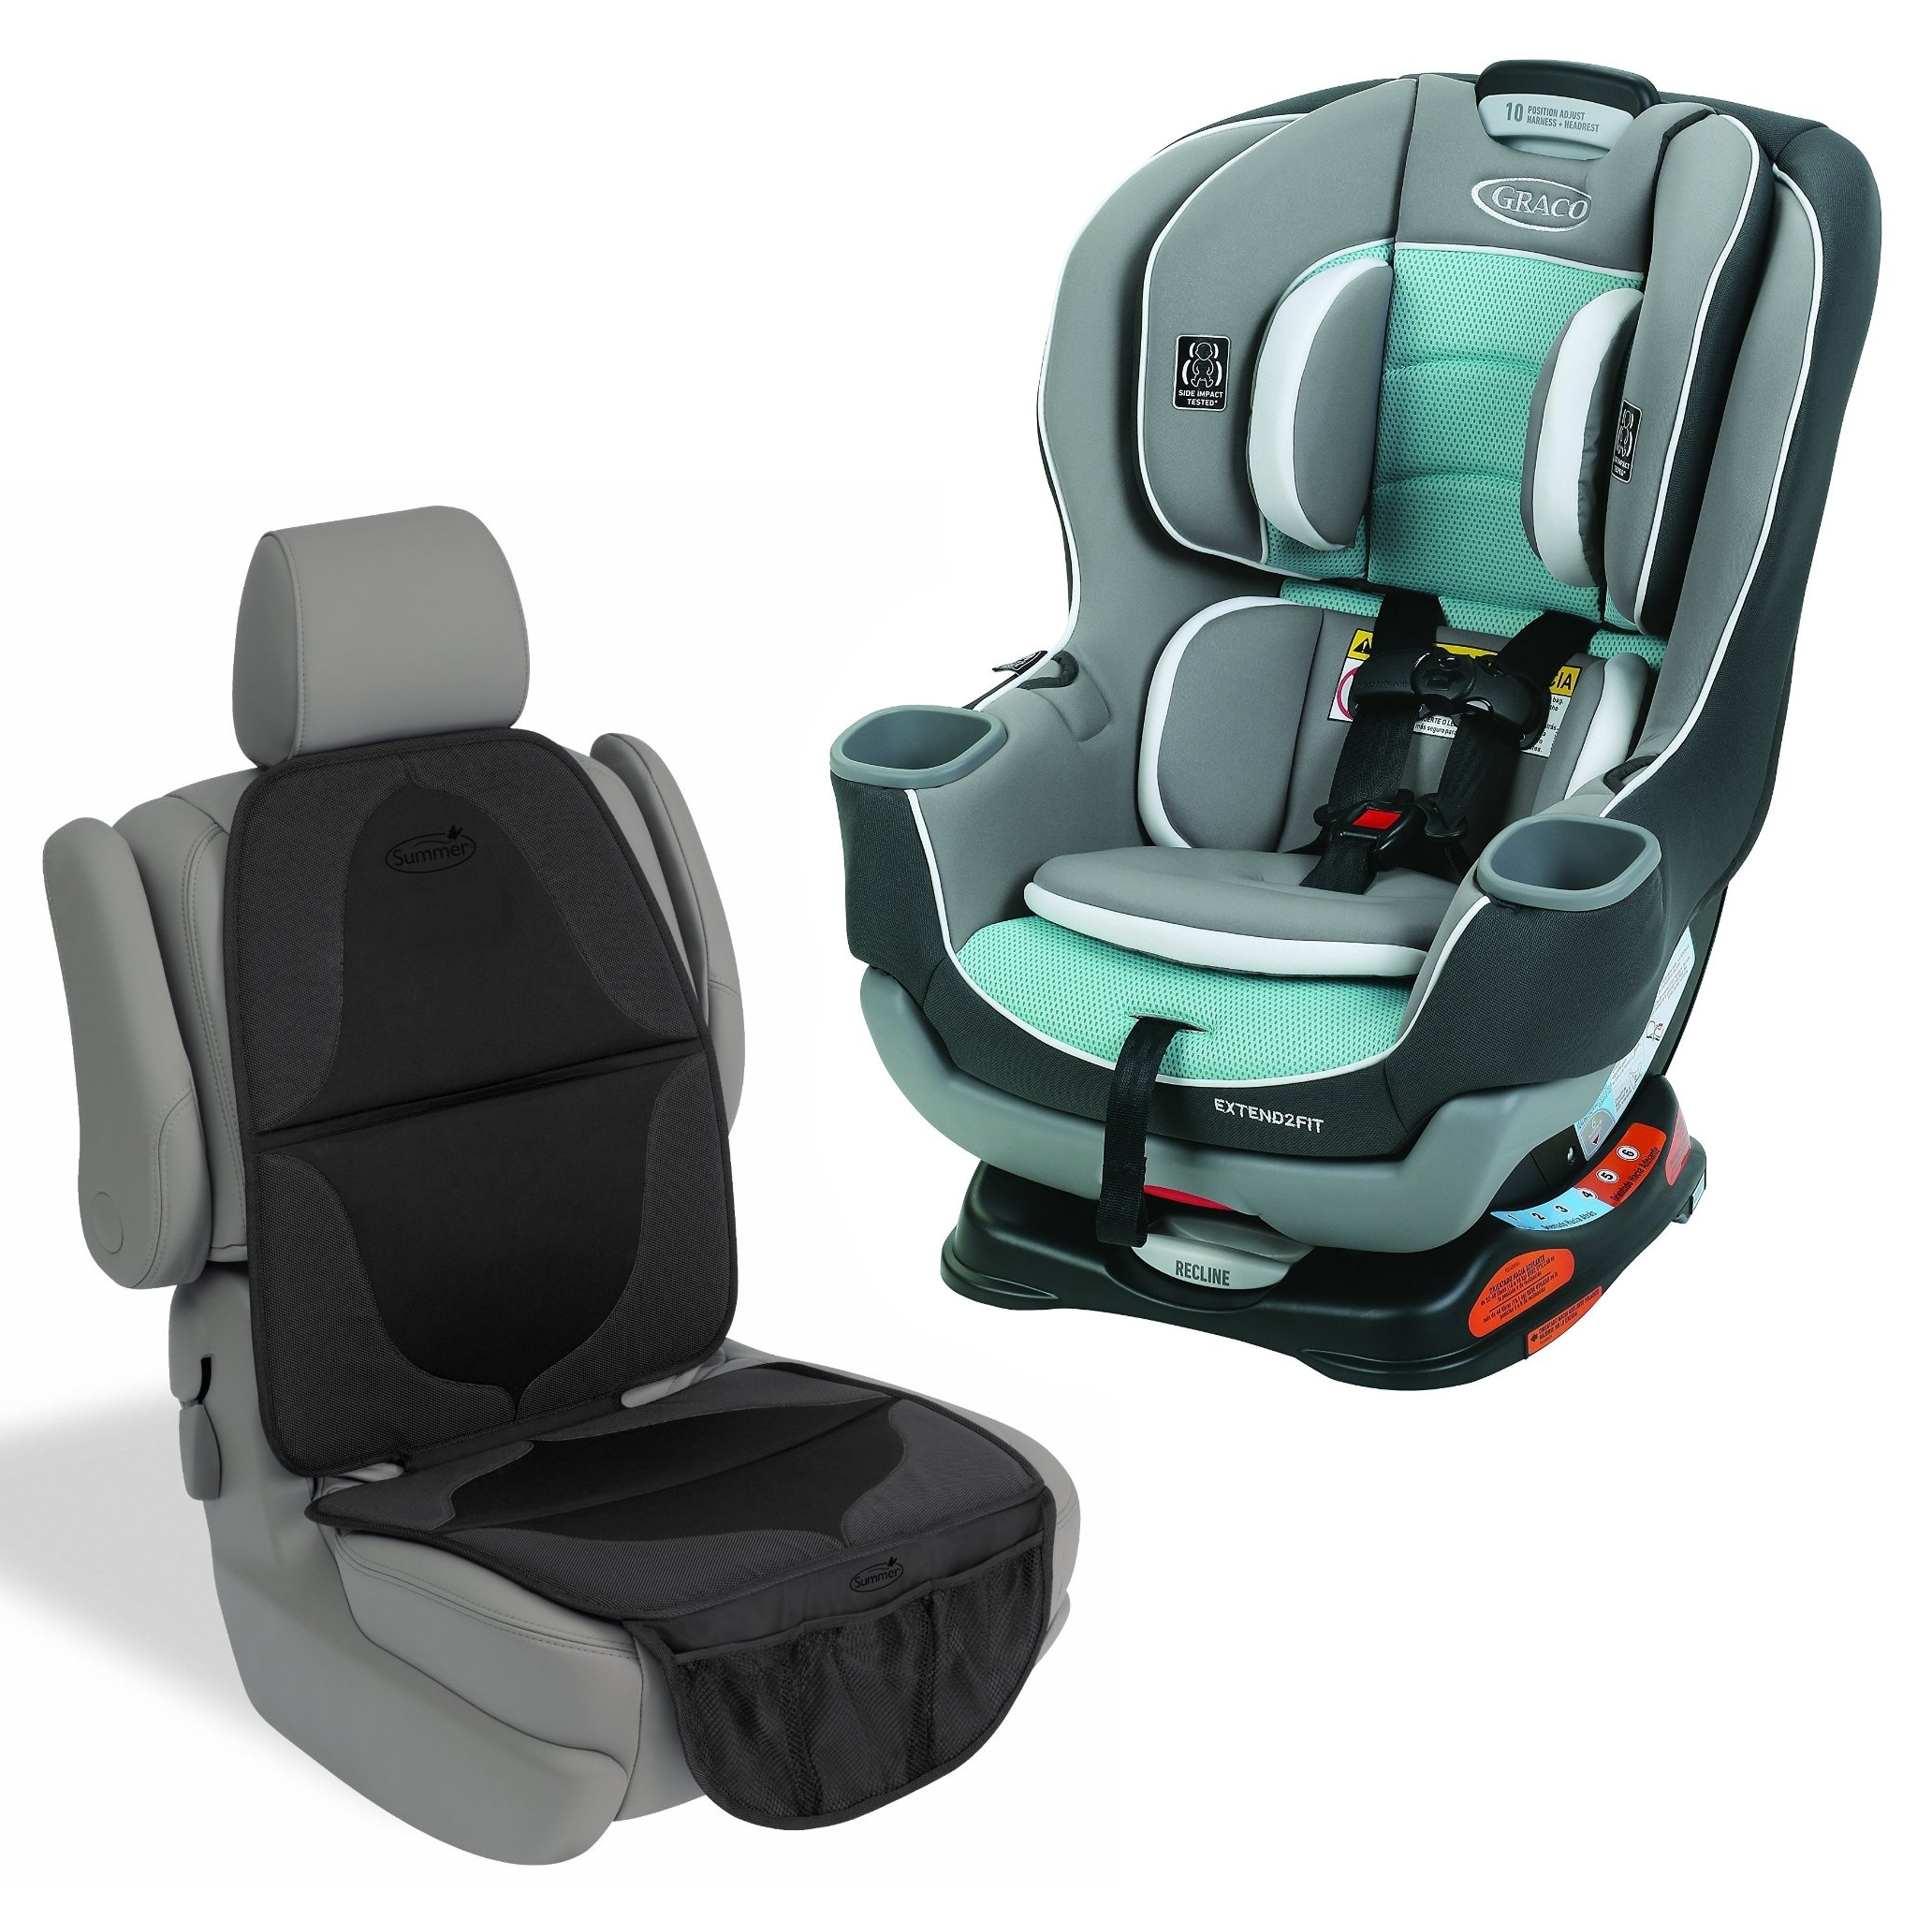 Graco Extend2Fit Convertible Car Seat with Seat Mat, Spire